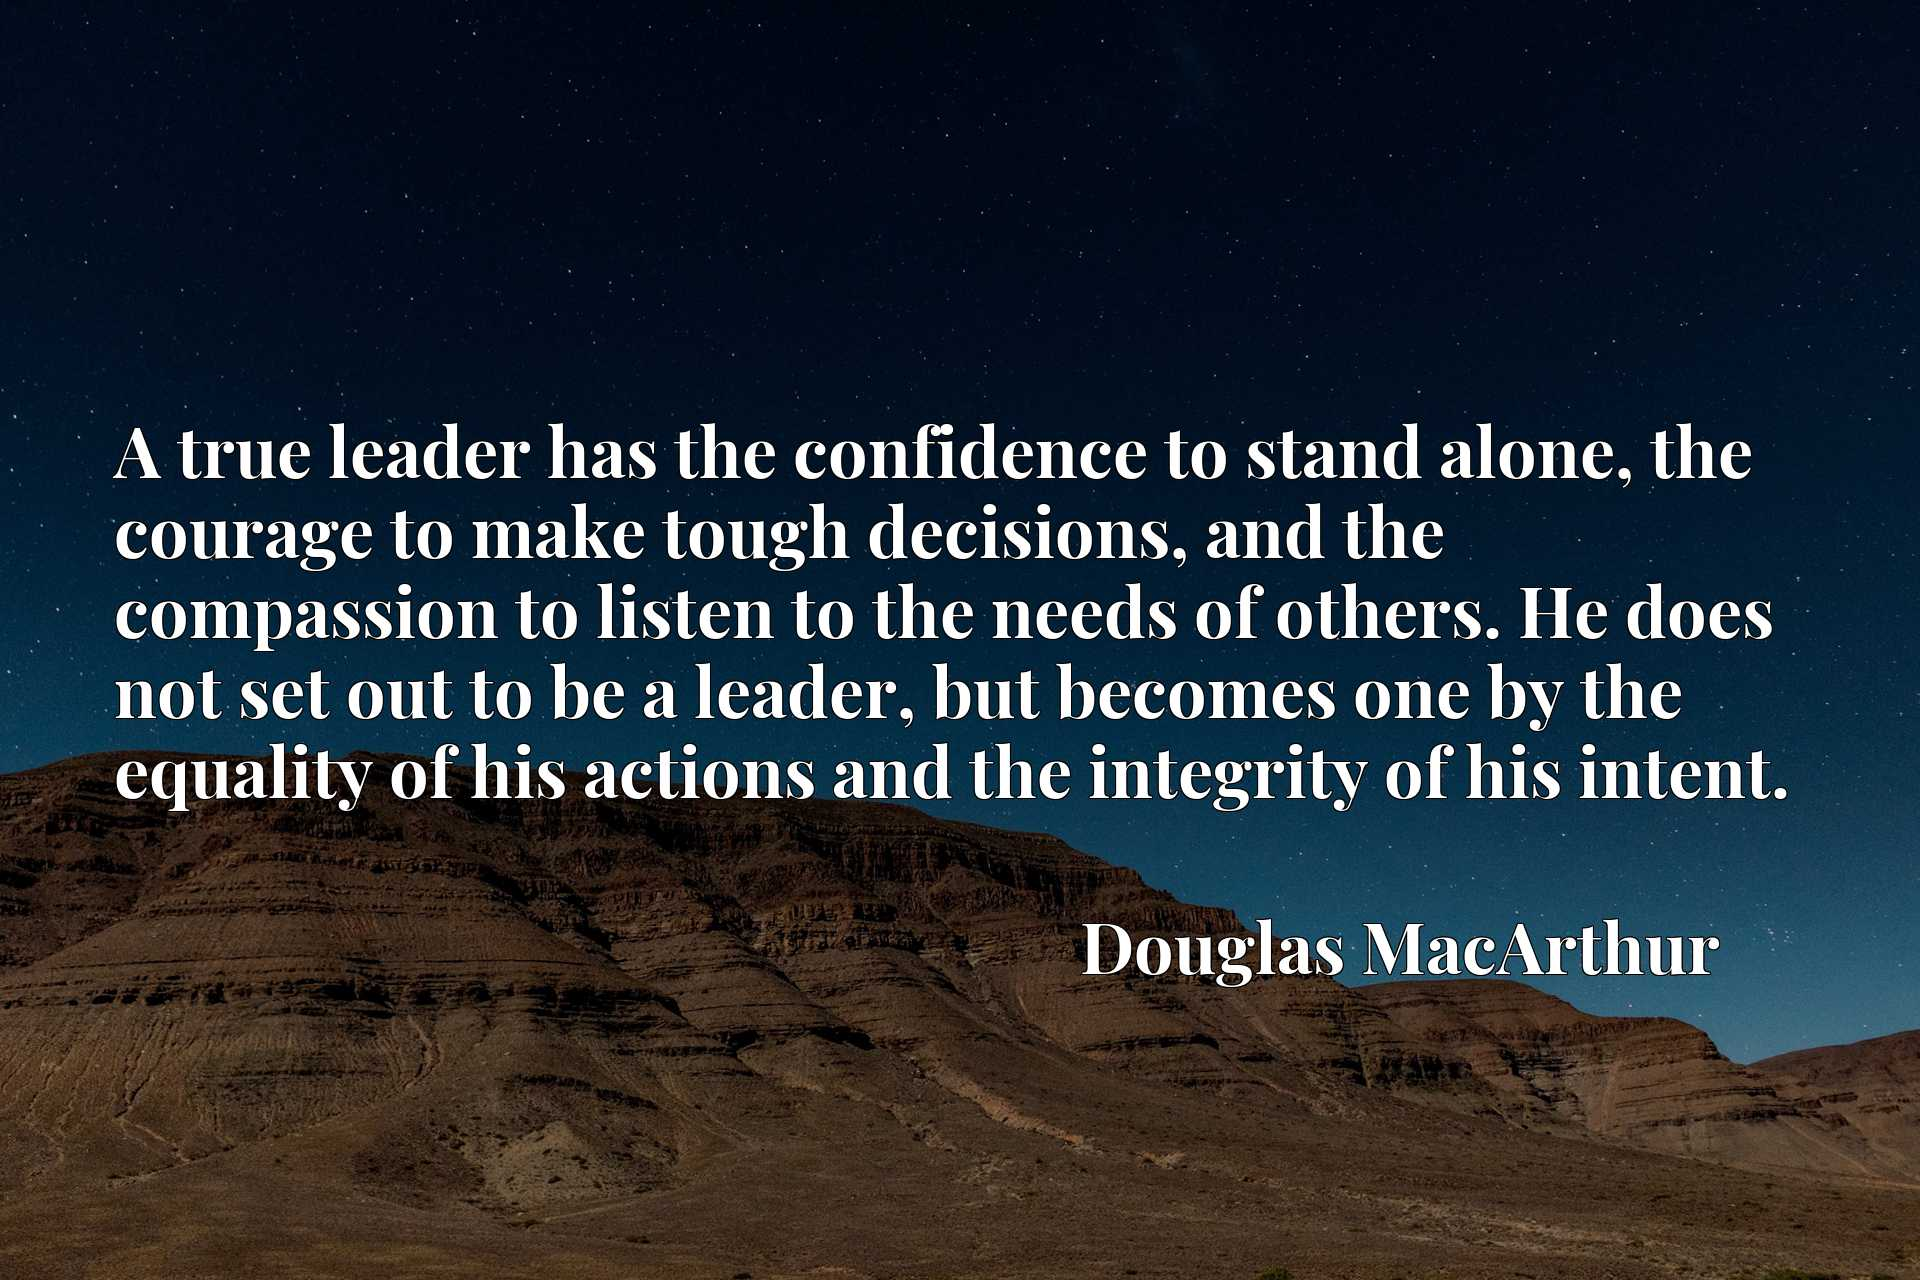 A true leader has the confidence to stand alone, the courage to make tough decisions, and the compassion to listen to the needs of others. He does not set out to be a leader, but becomes one by the equality of his actions and the integrity of his intent.